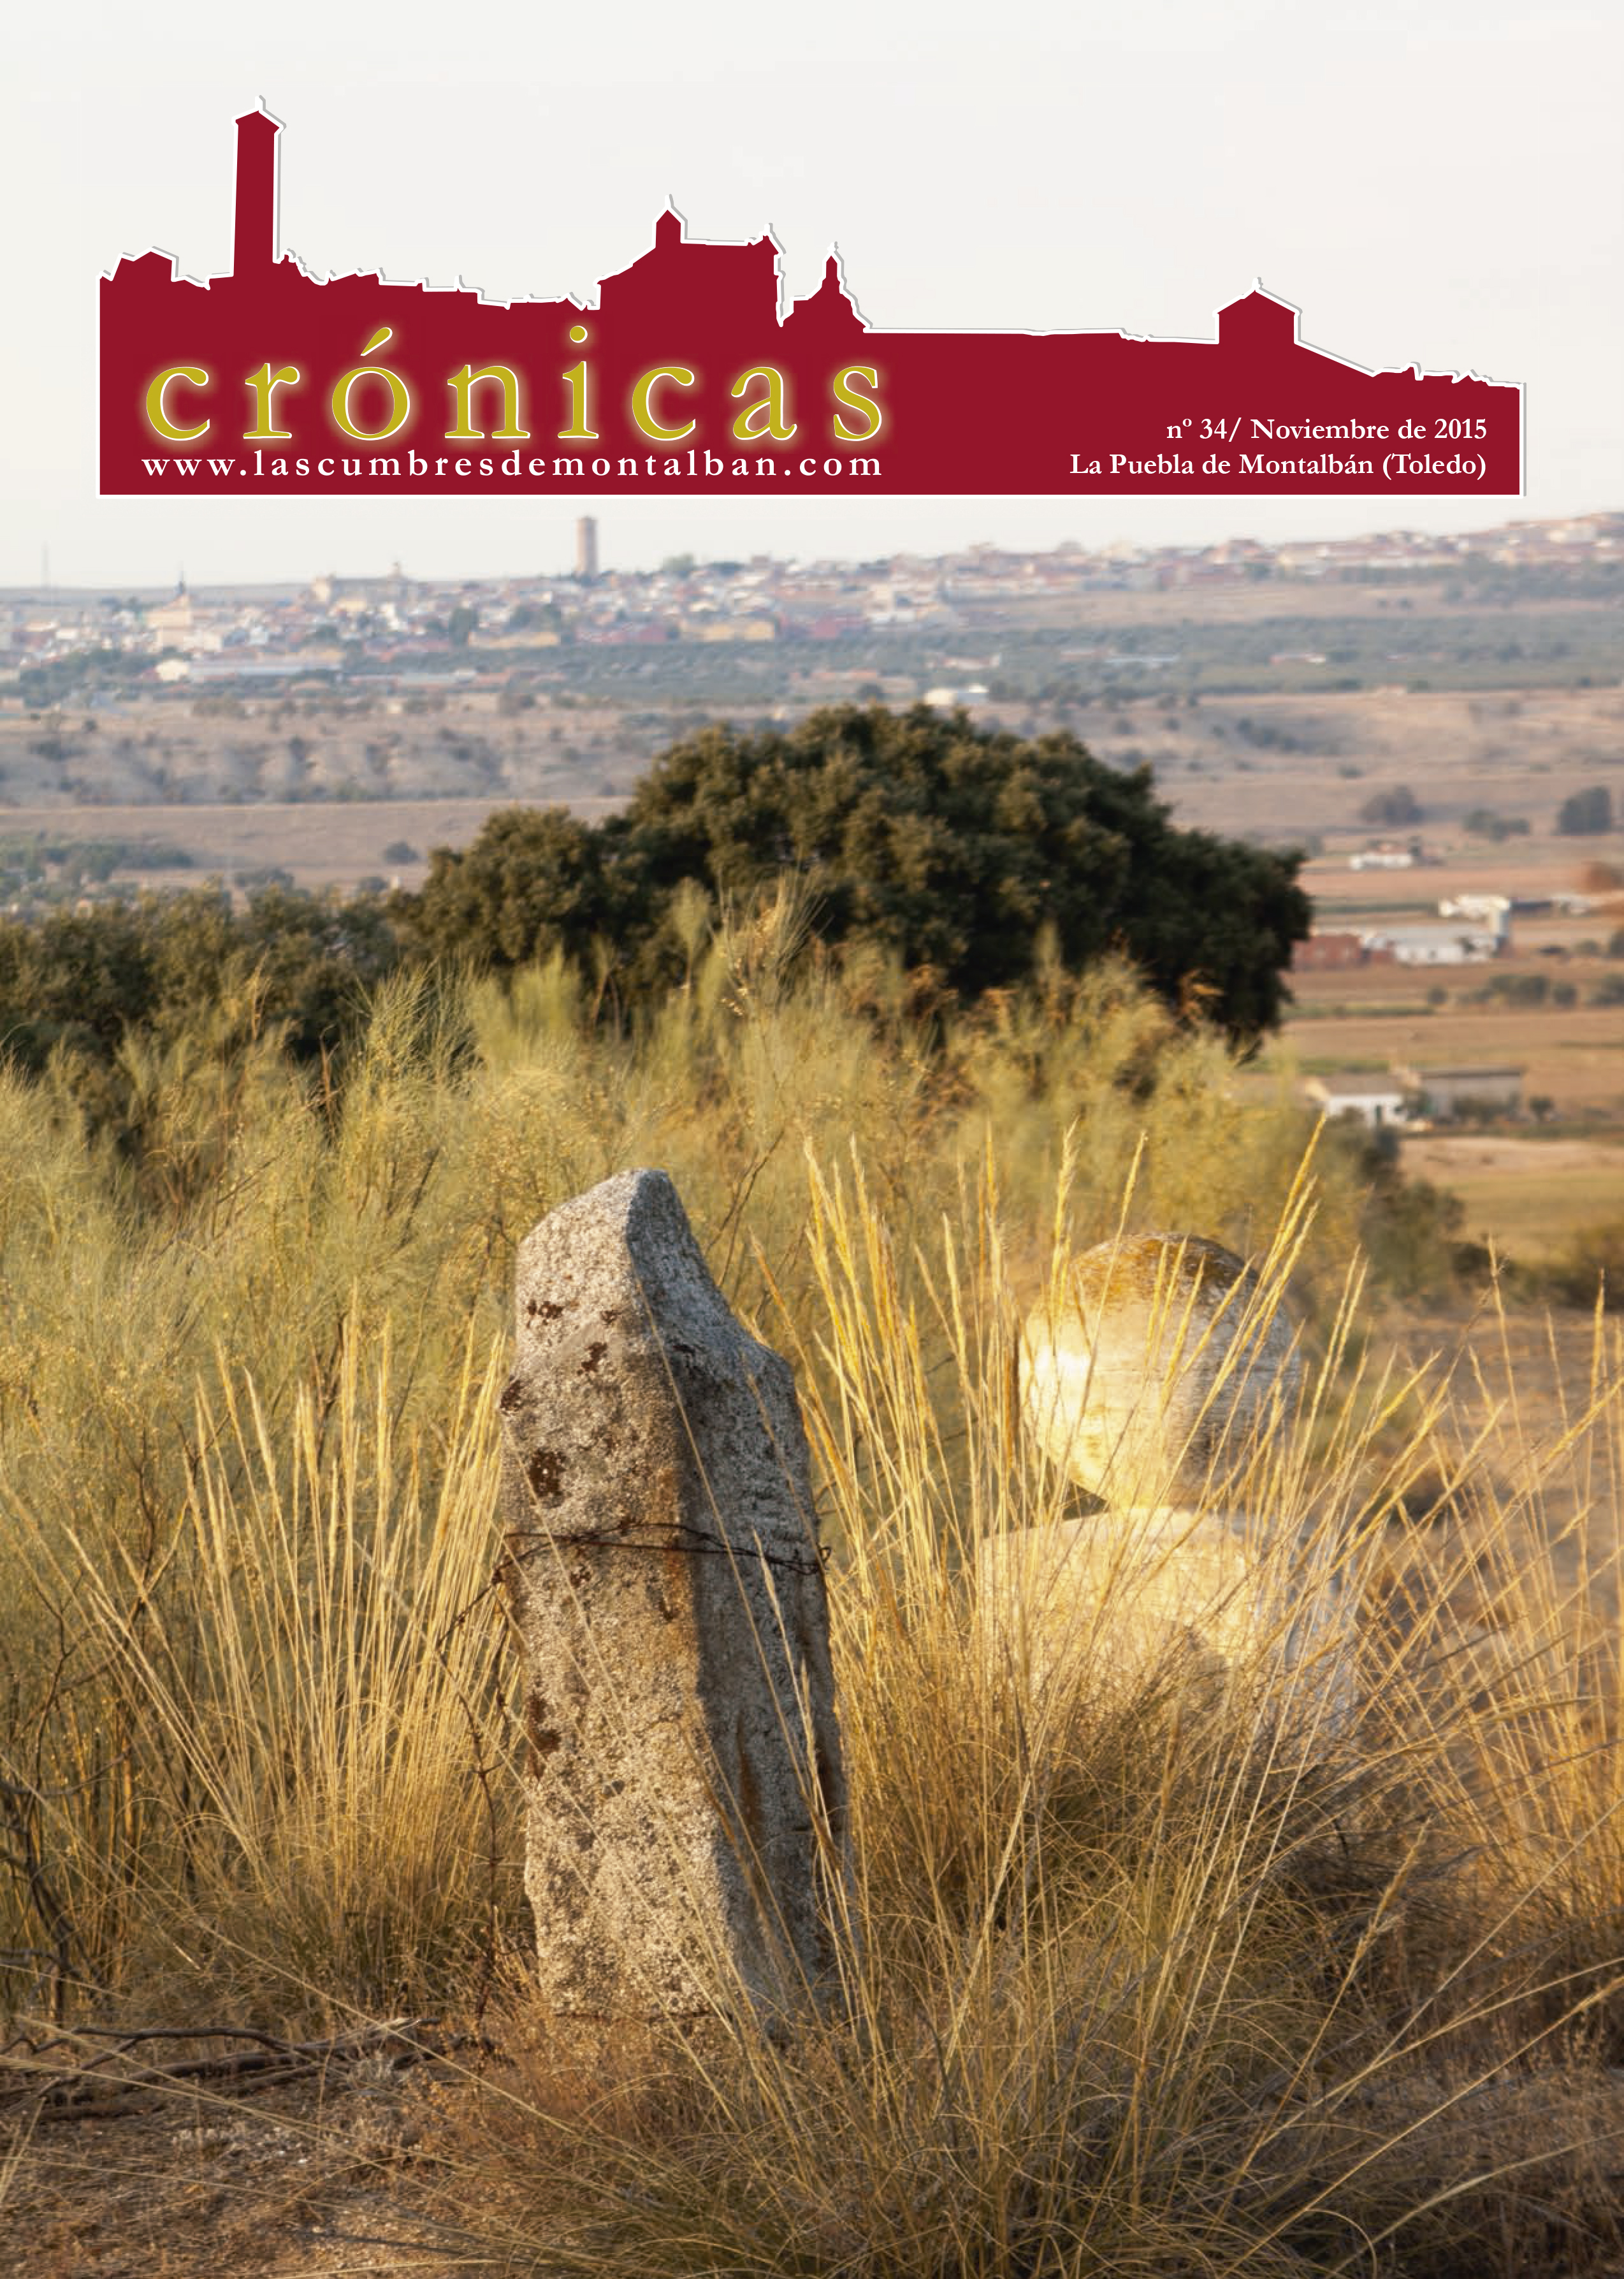 Crónicas 34.indd